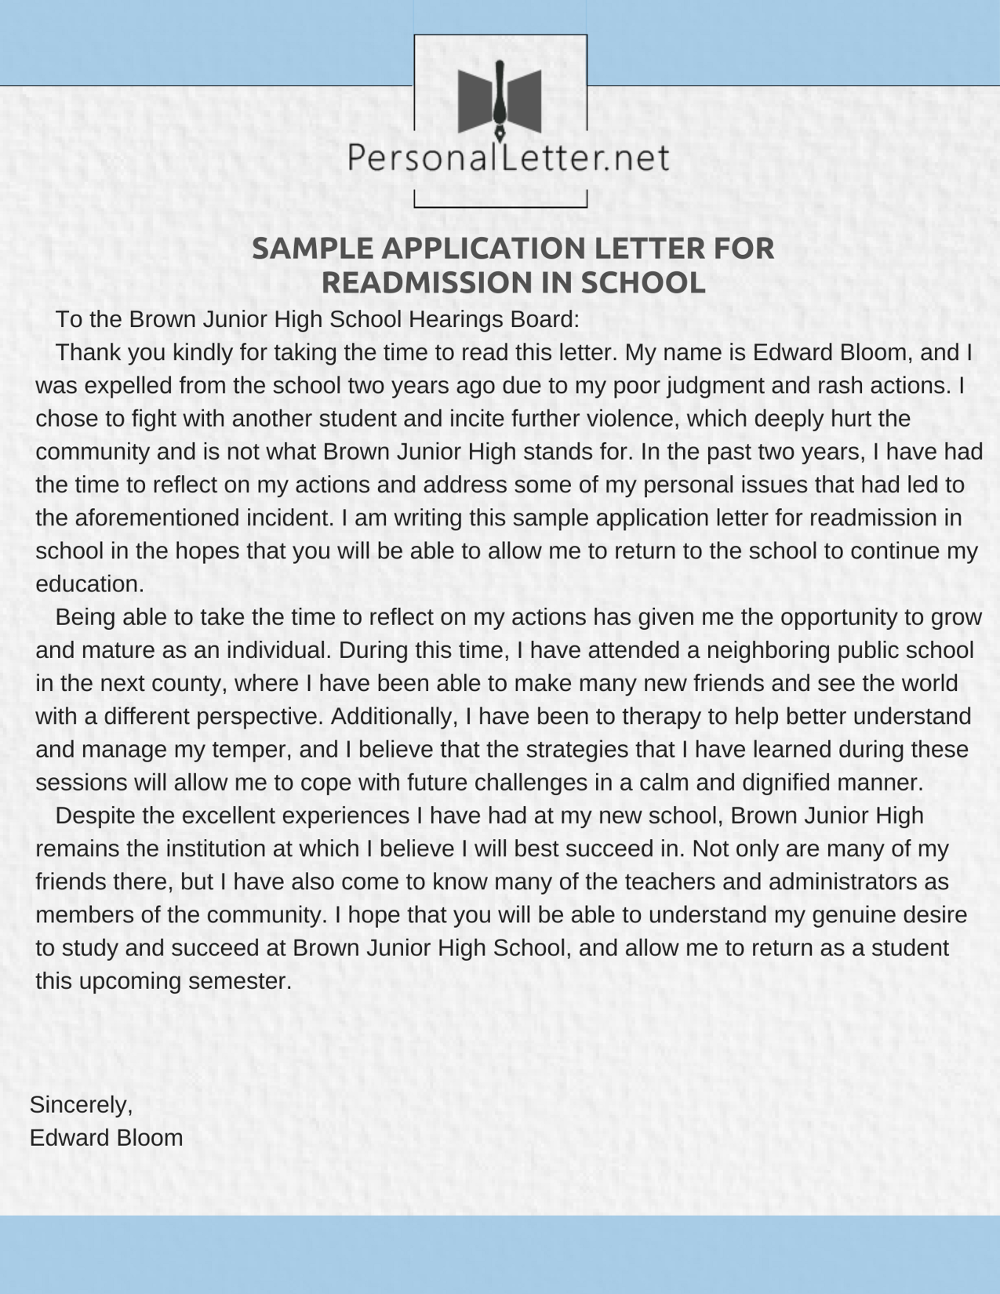 Sample Application Letter For Readmission In School  Application